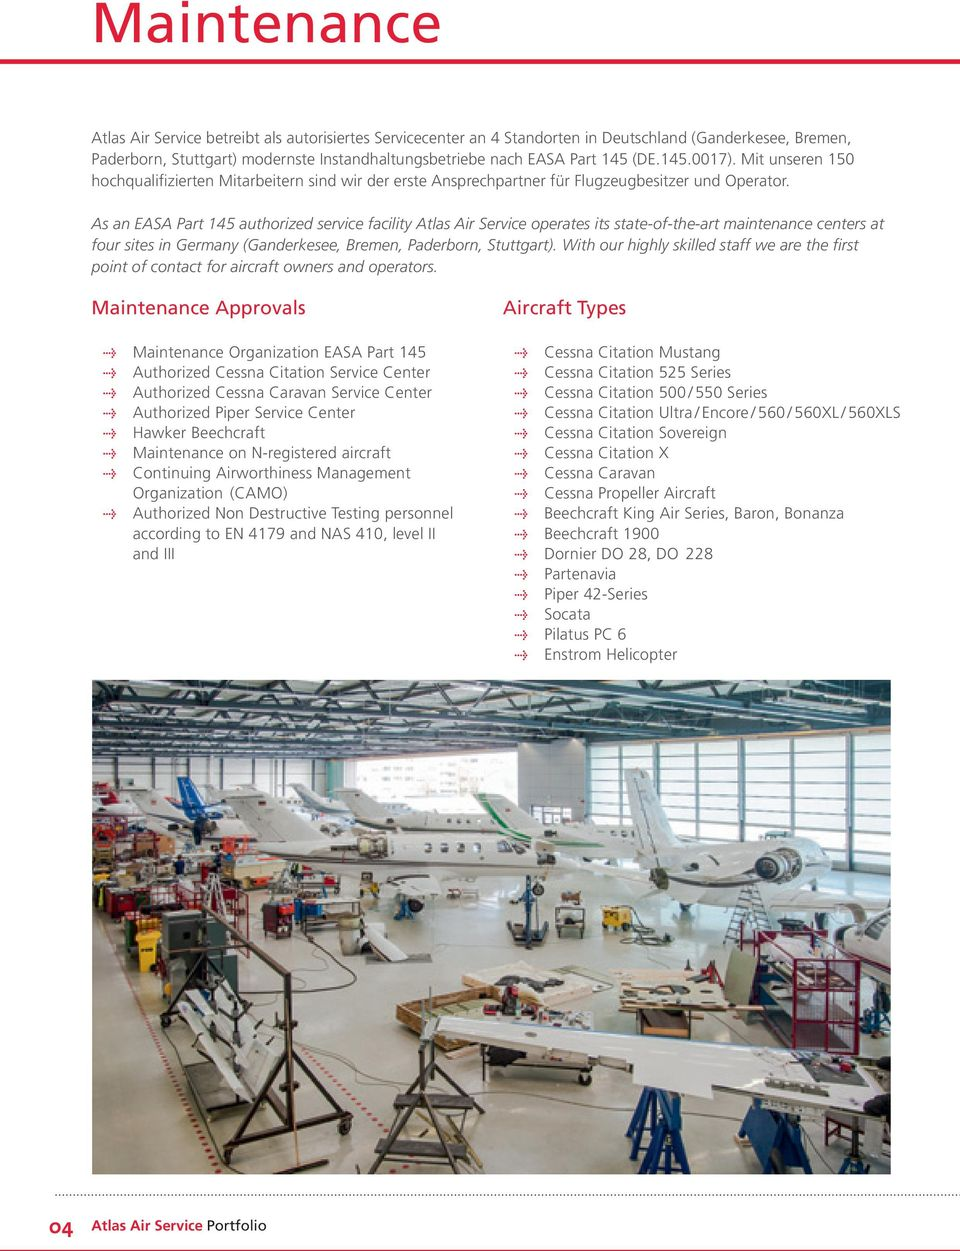 As an EASA Part 145 authorized service facility Atlas Air Service operates its state-of-the-art maintenance centers at four sites in Germany (Ganderkesee, Bremen, Paderborn, Stuttgart).